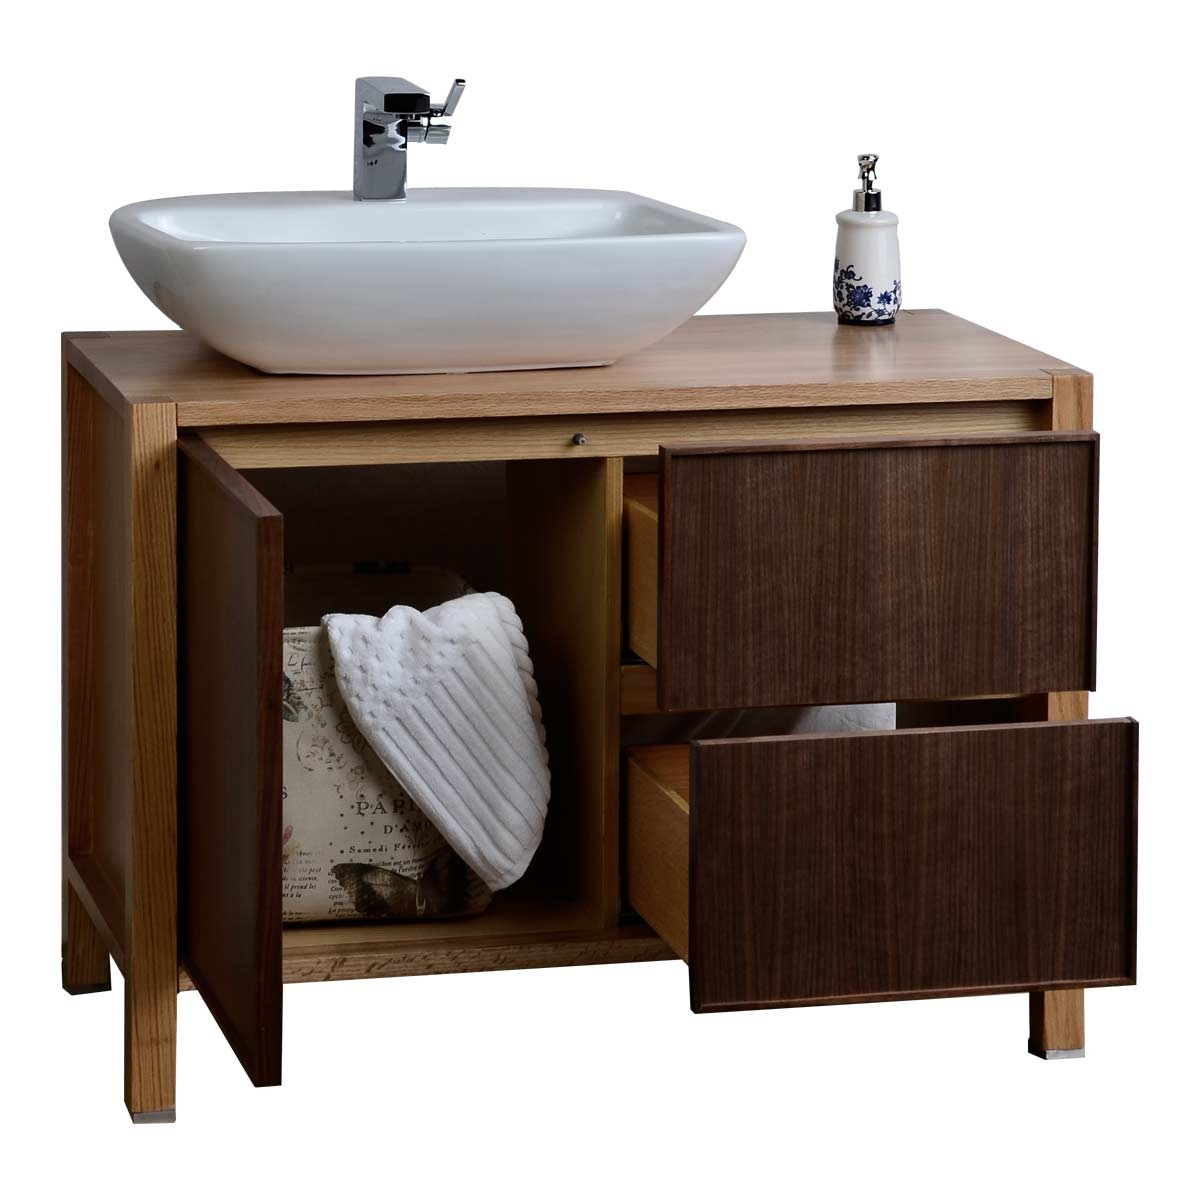 Permalink to Real Wood Bathroom Cabinets